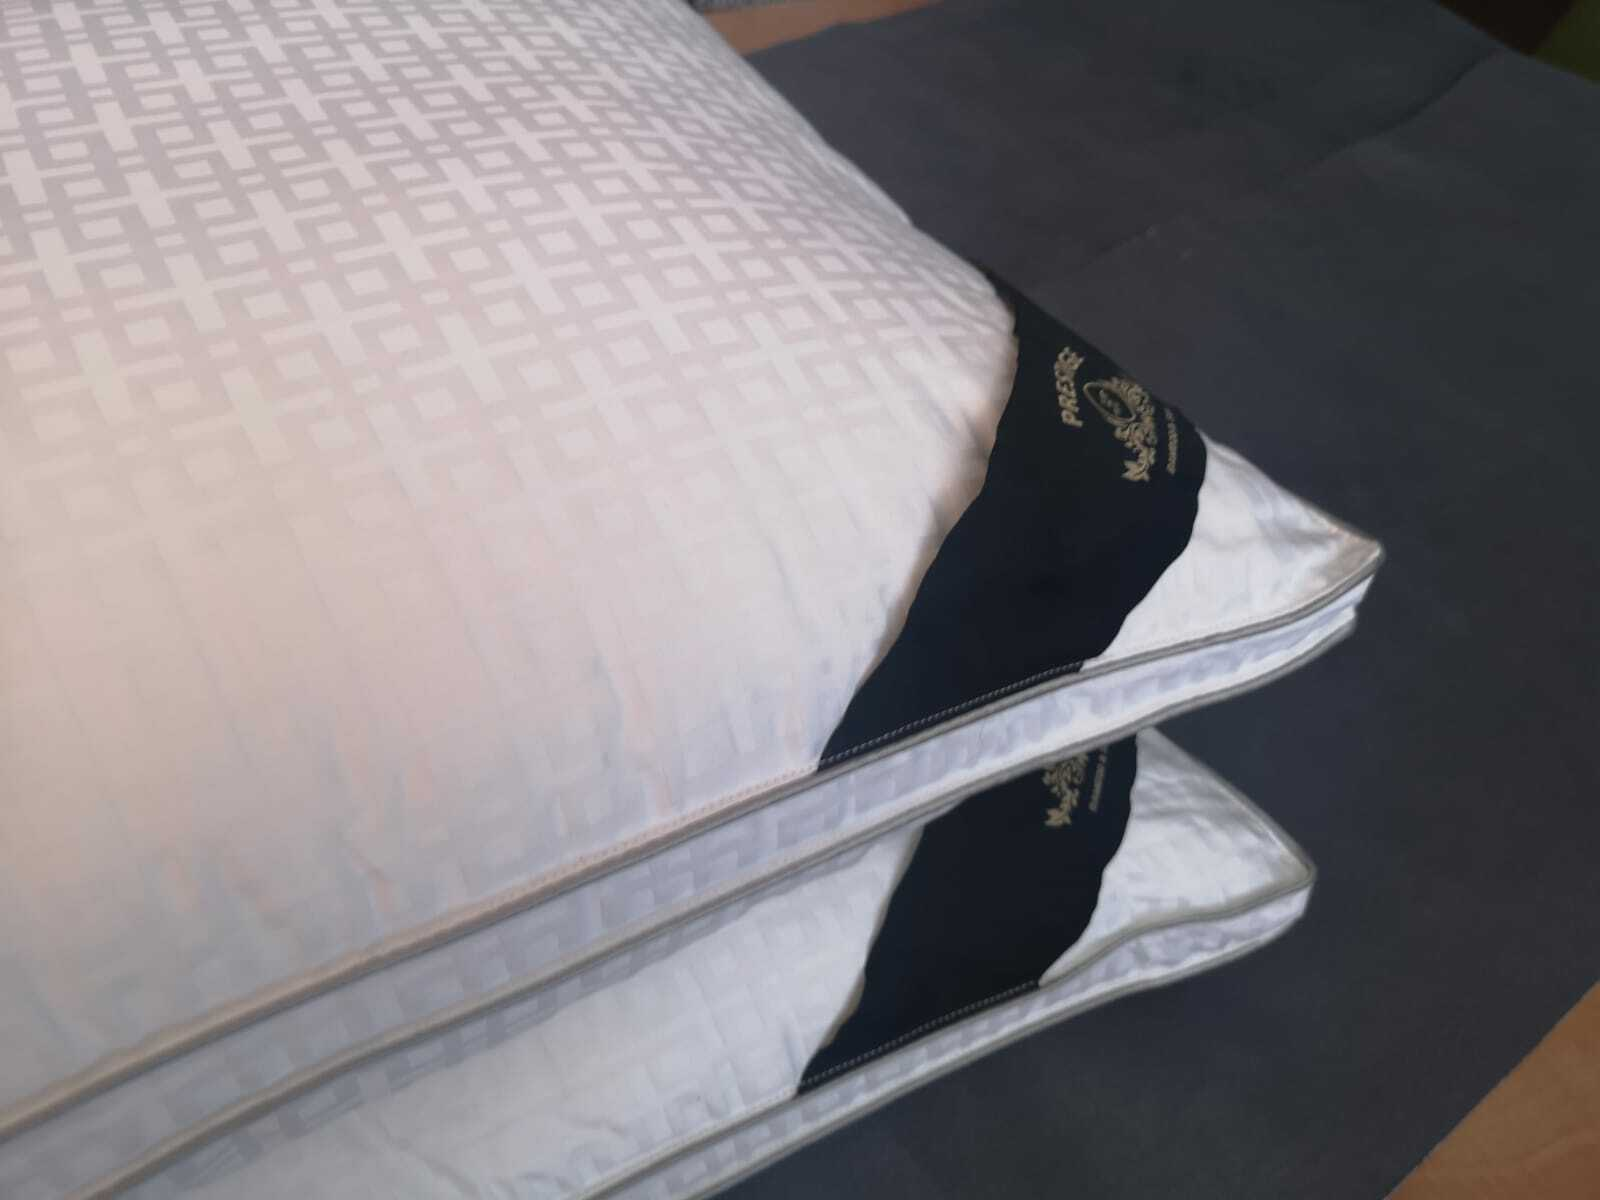 PAIR OF BAMBOO COTTON 600 T C C C FEELS LIKE 100% DOWN PILLOW SILK FILLED PILLOWS ff780f